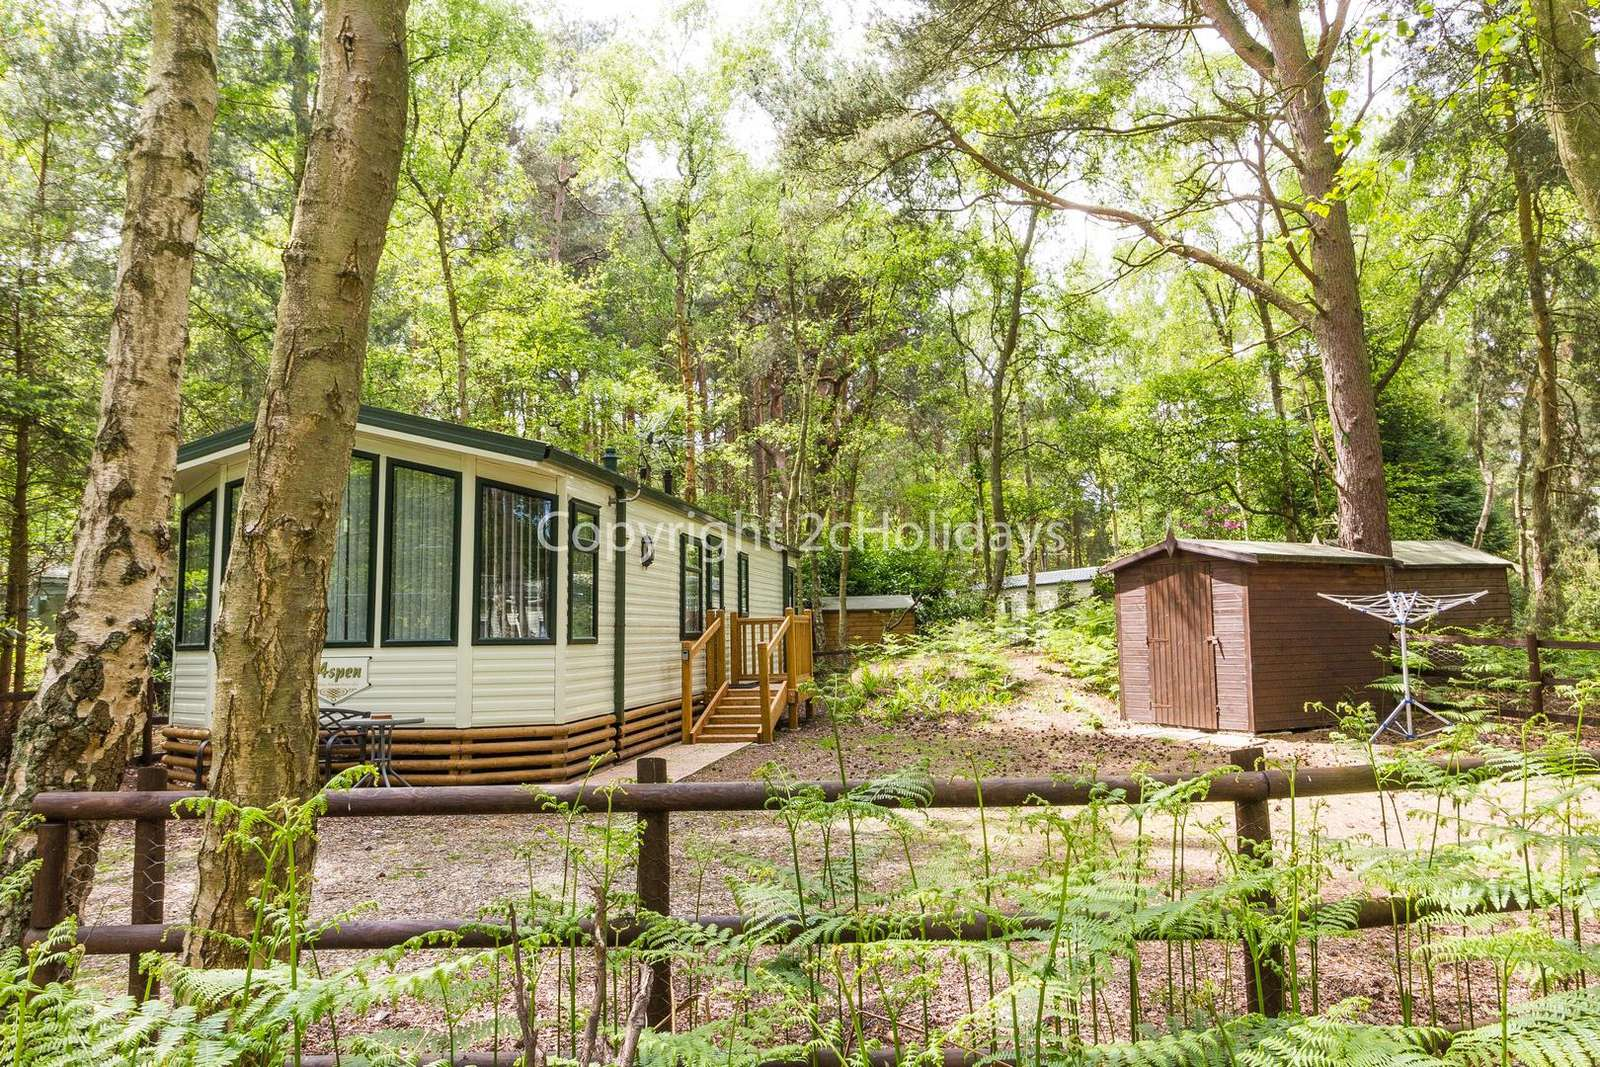 Within this woodland setting, you can totally unwind and relax!